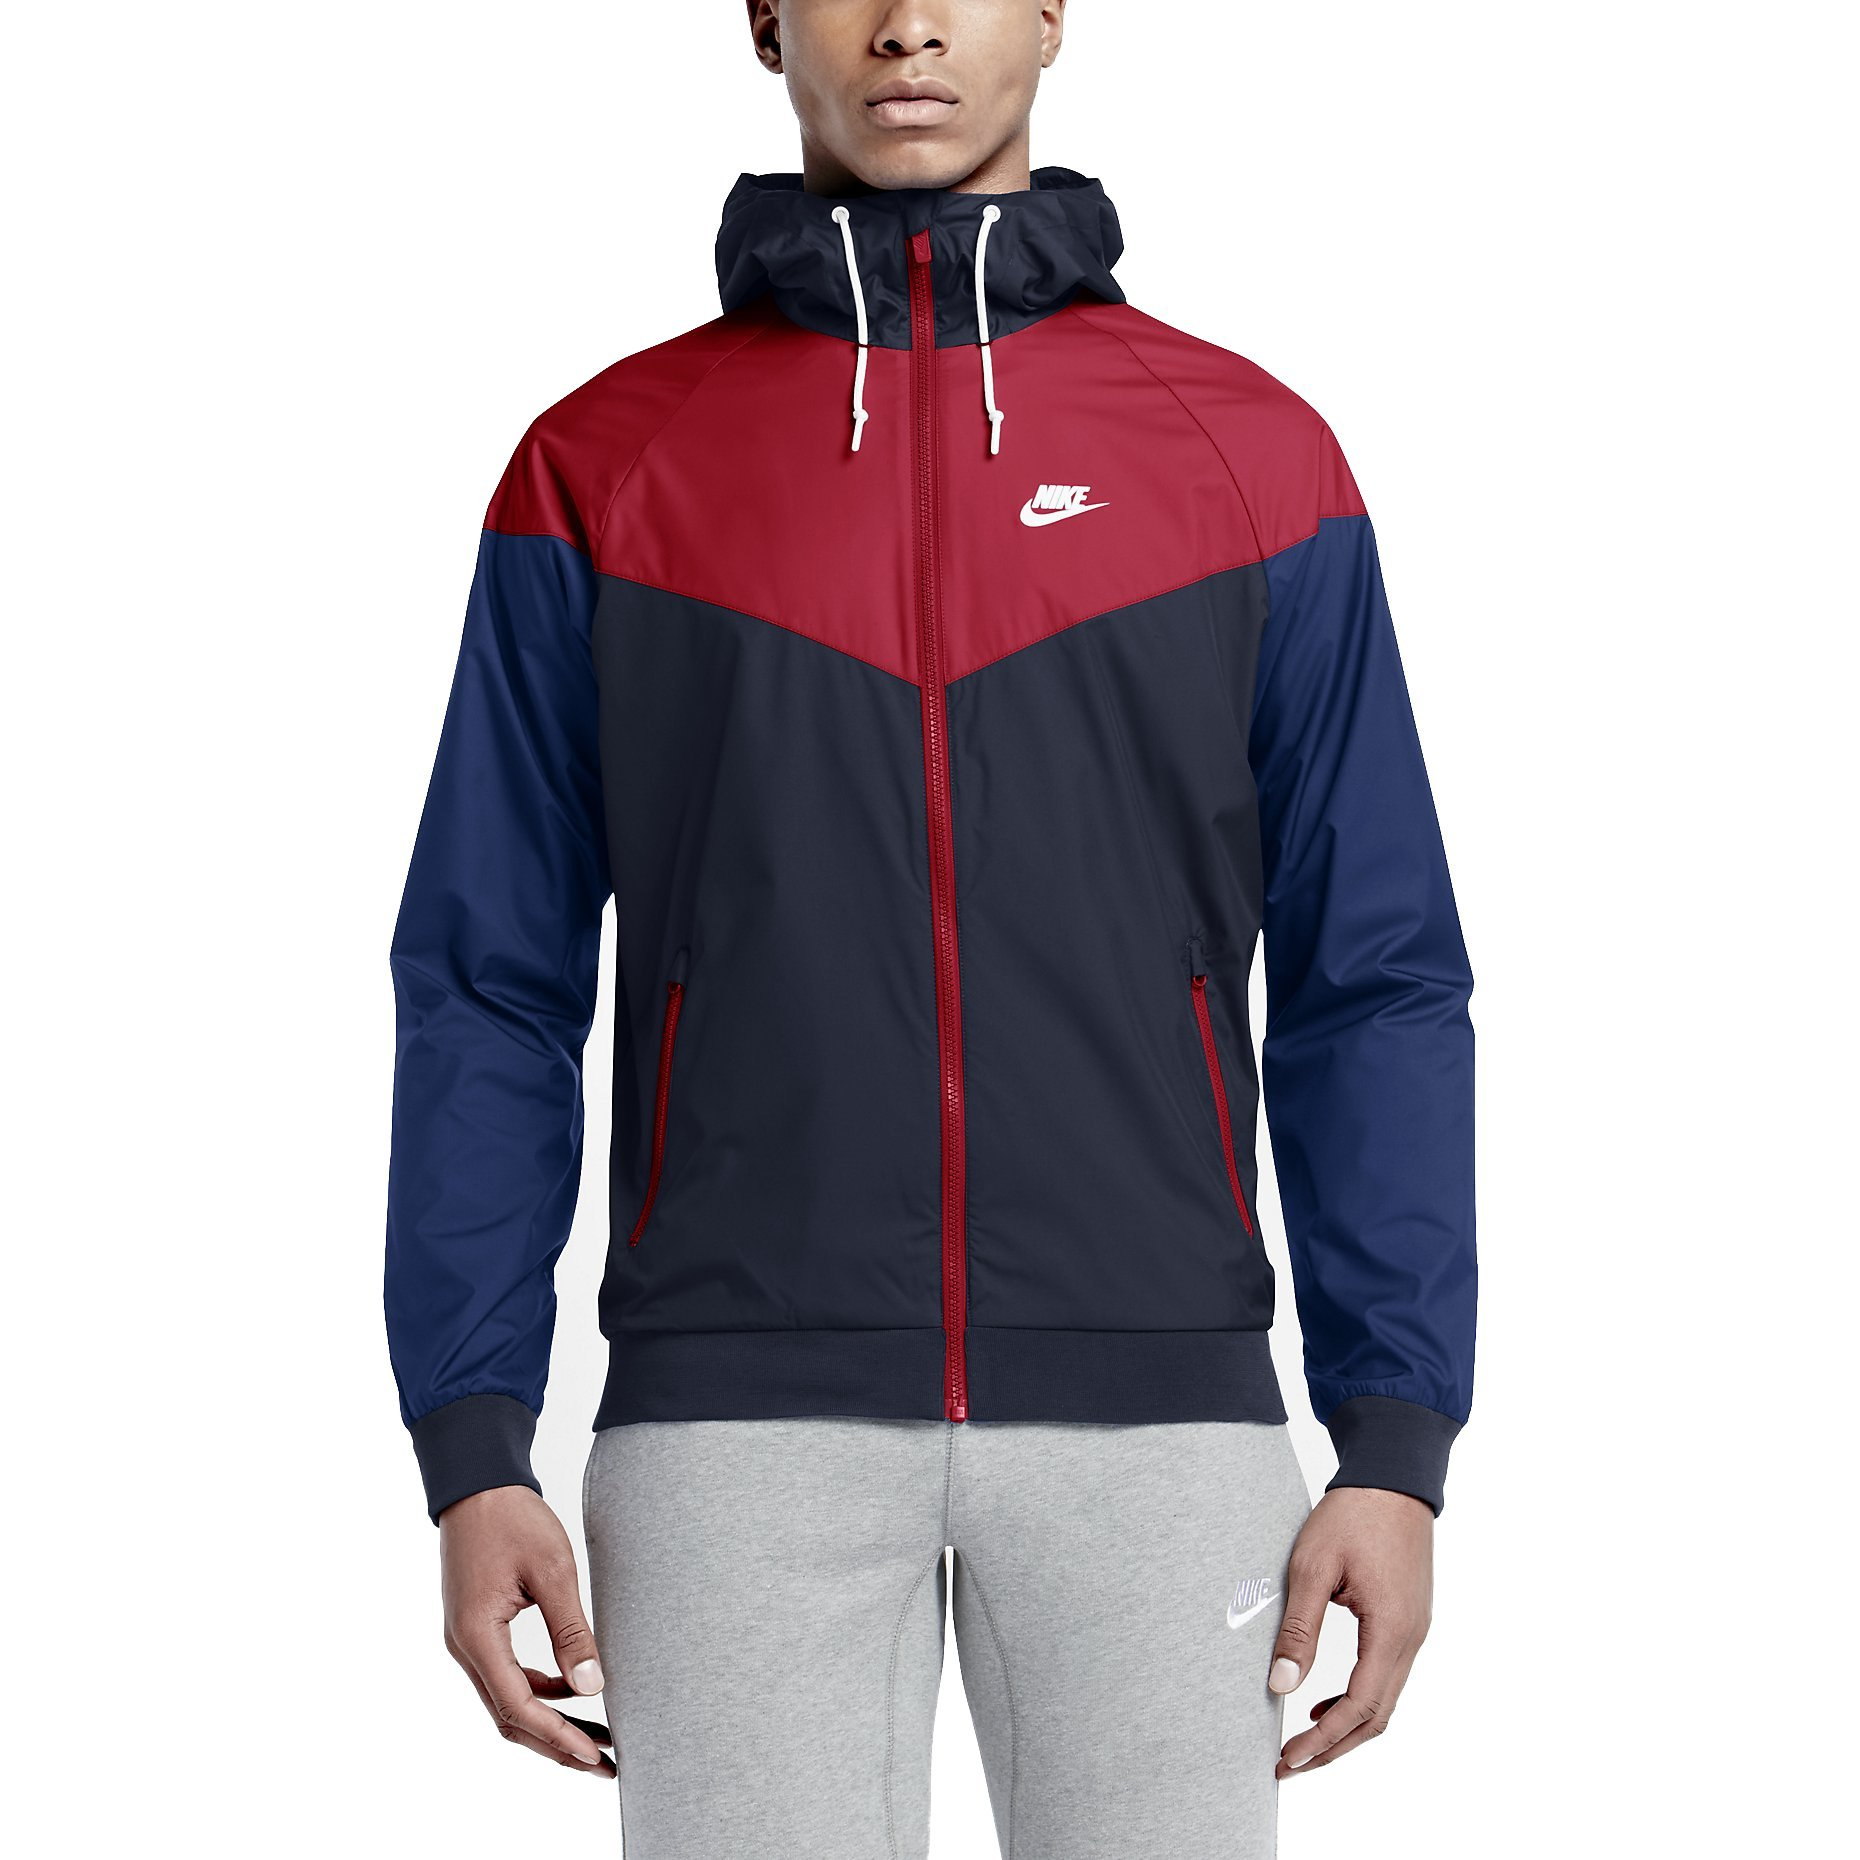 Nike Mens Windrunner Hooded Track Jacket Obsidian Blue/University Red 727324-452 Size X-Large by Nike